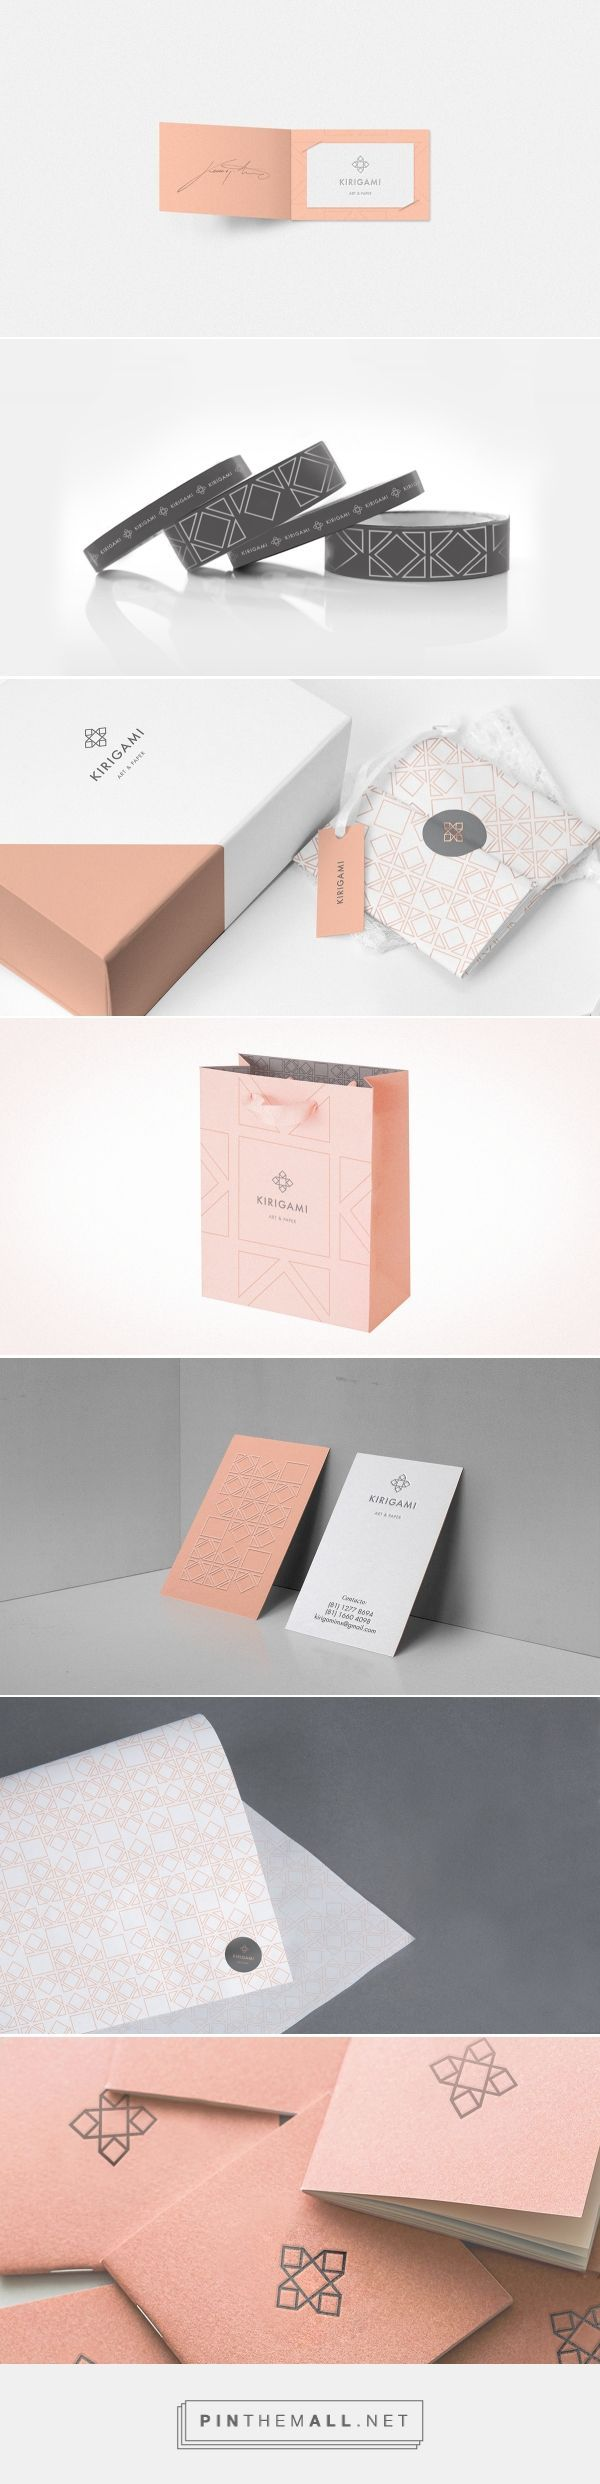 chapter 14 branding and packaging